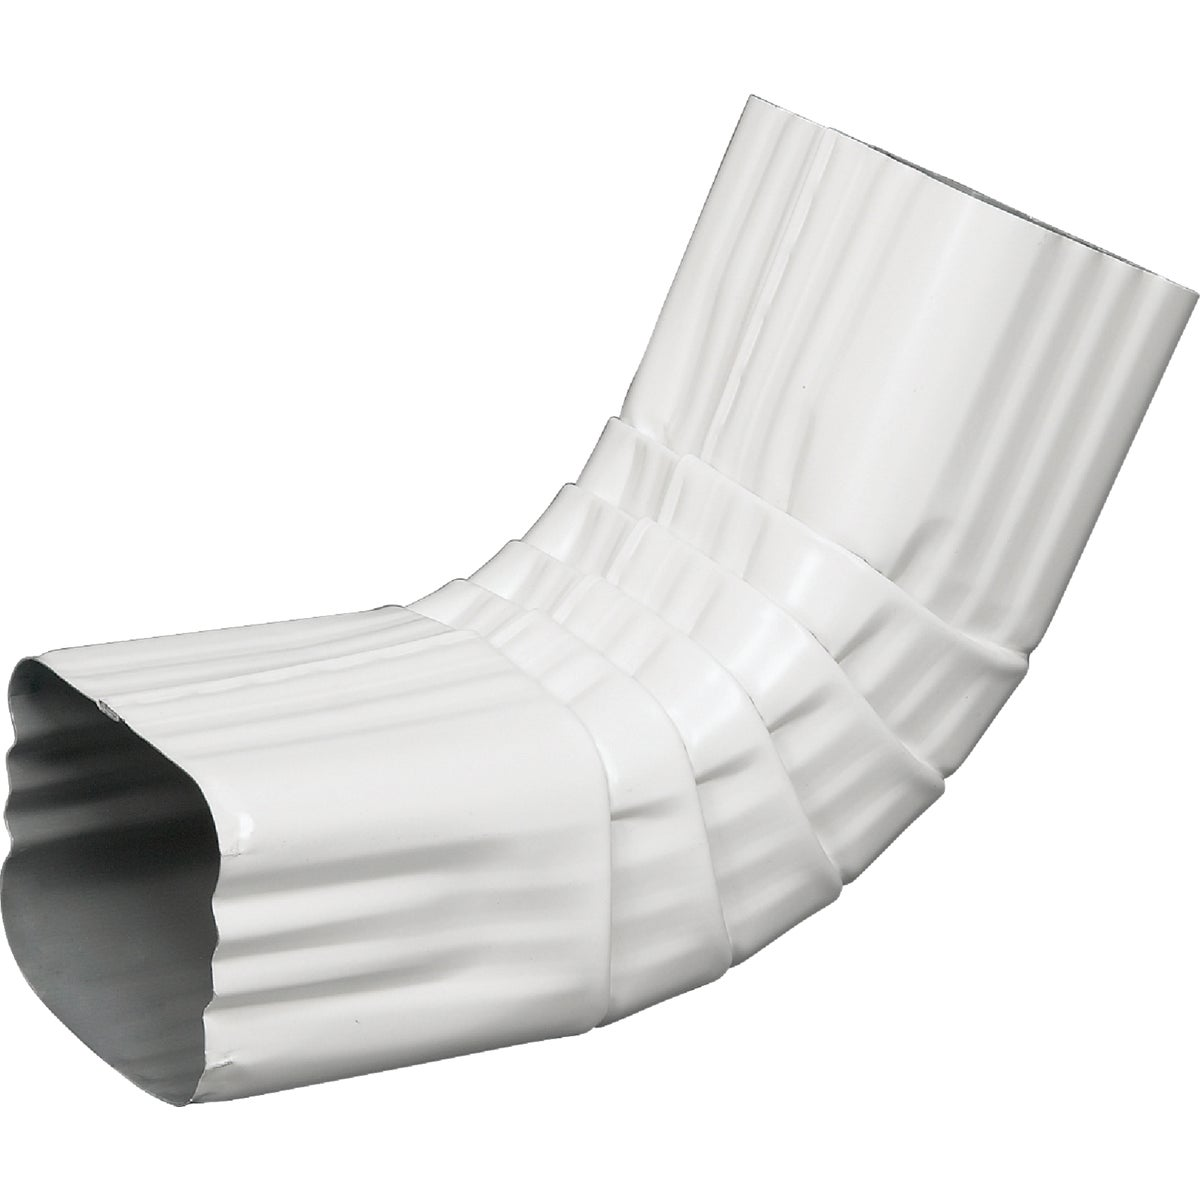 2X3 WHT A-ELBOW - 33064 by Amerimax Home Prod